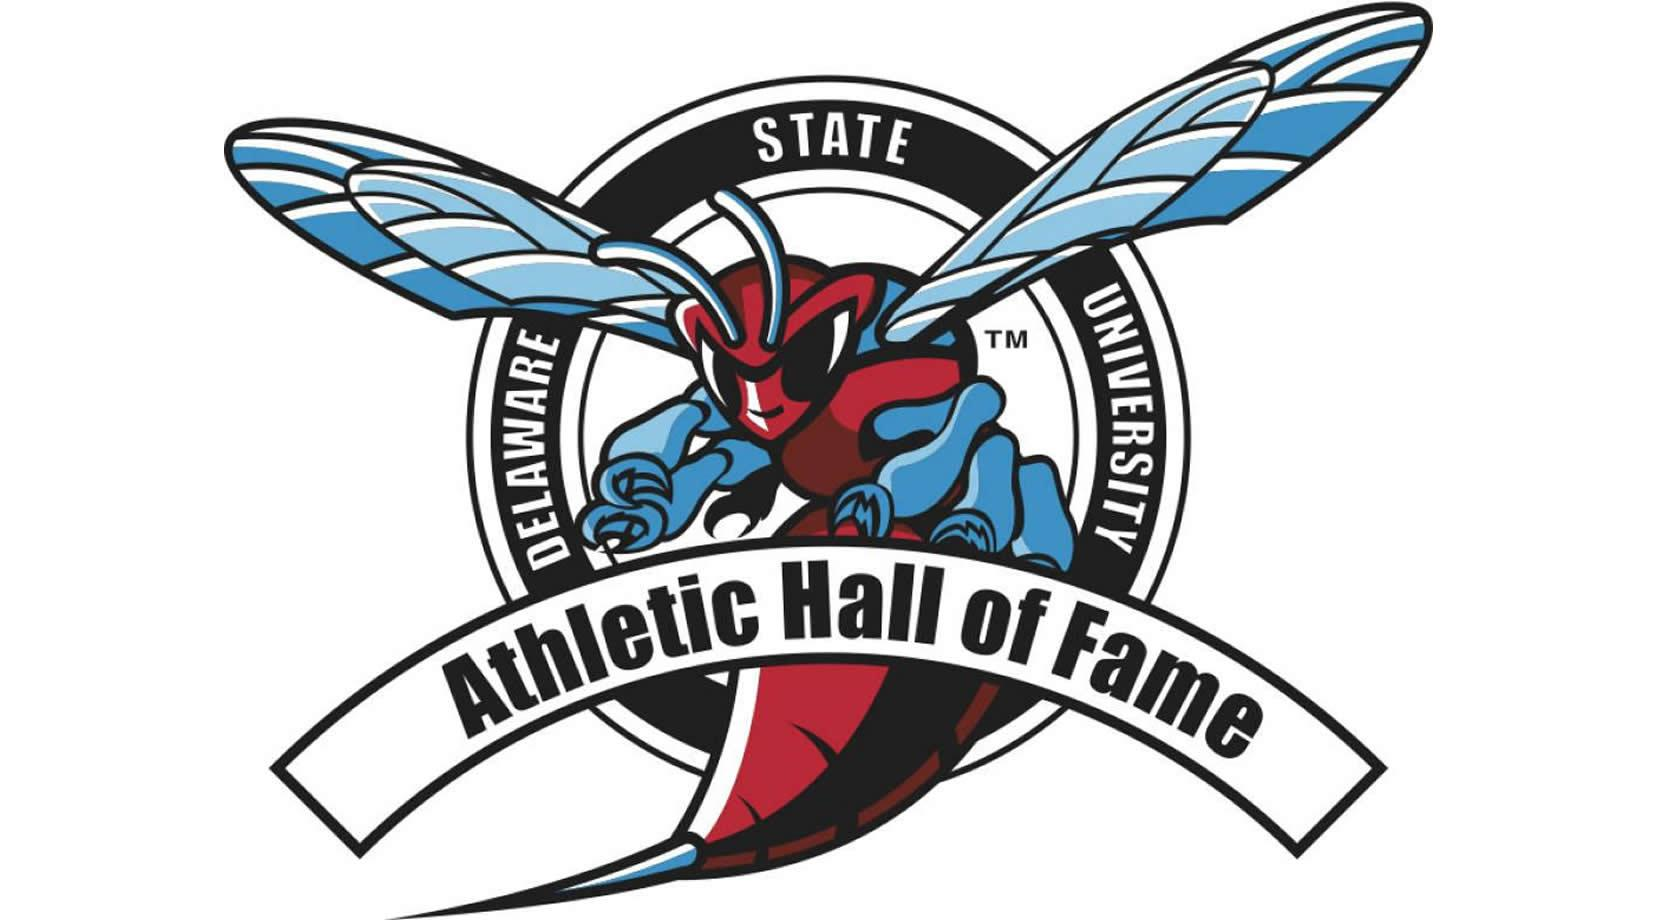 Delaware State University Athletic Hall of Fame